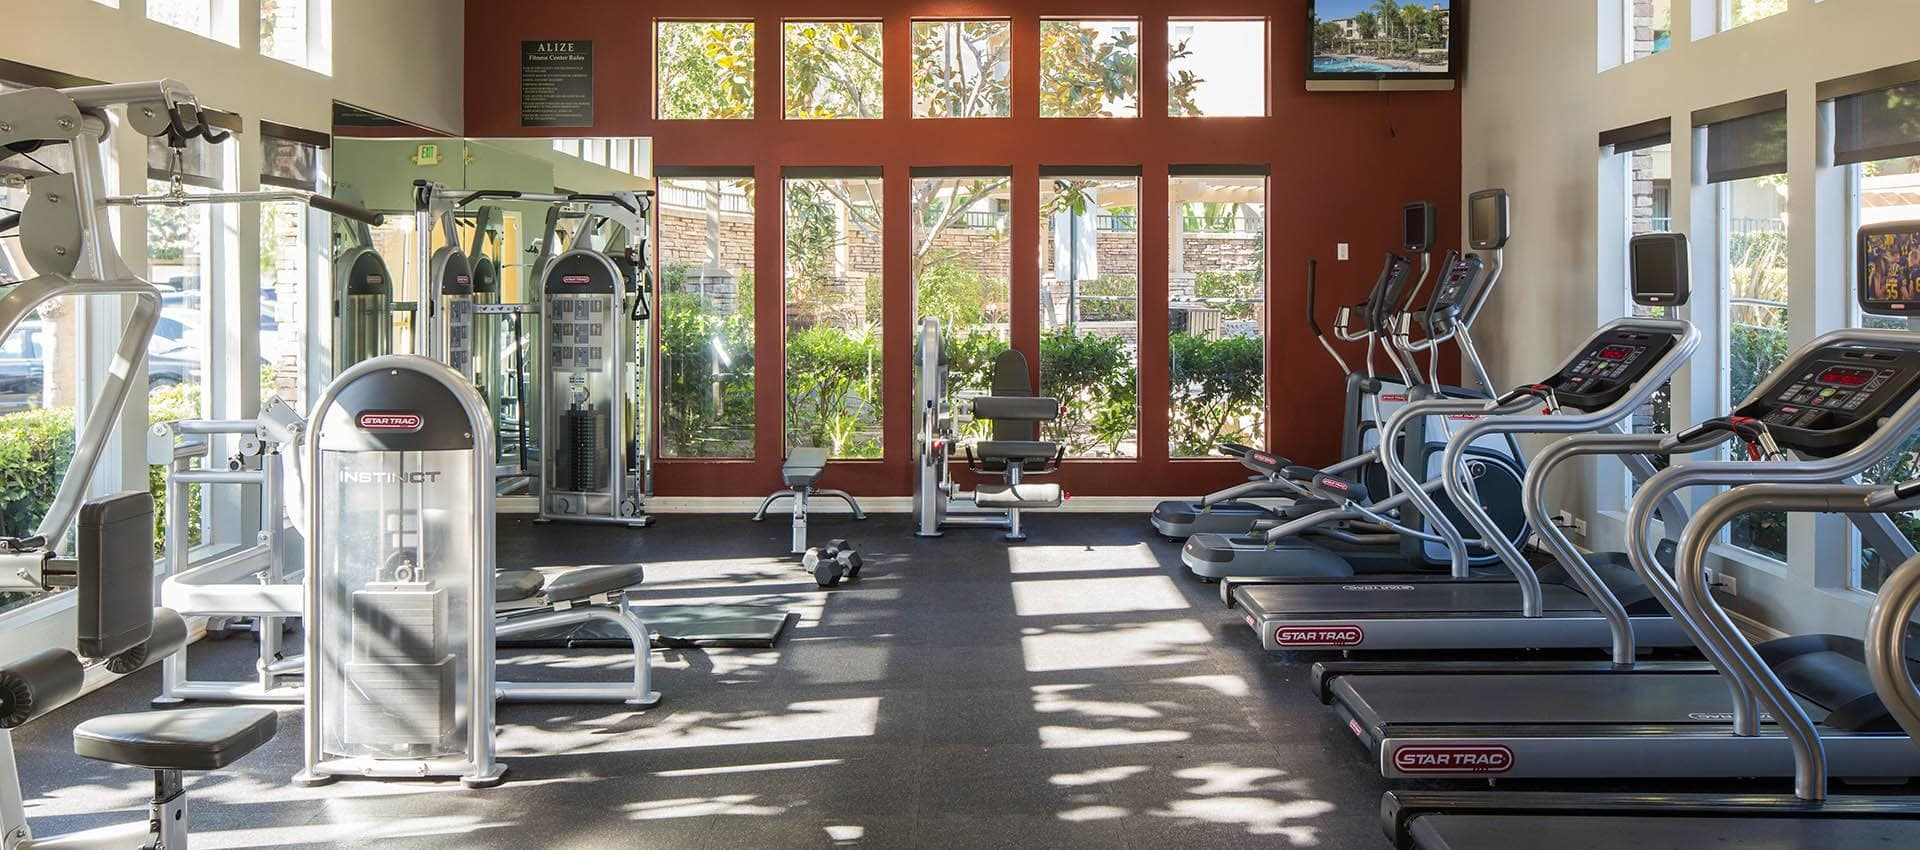 24 Hour Fitness Center in Alize at Aliso Viejo Apartment Homes in Aliso Viejo, California